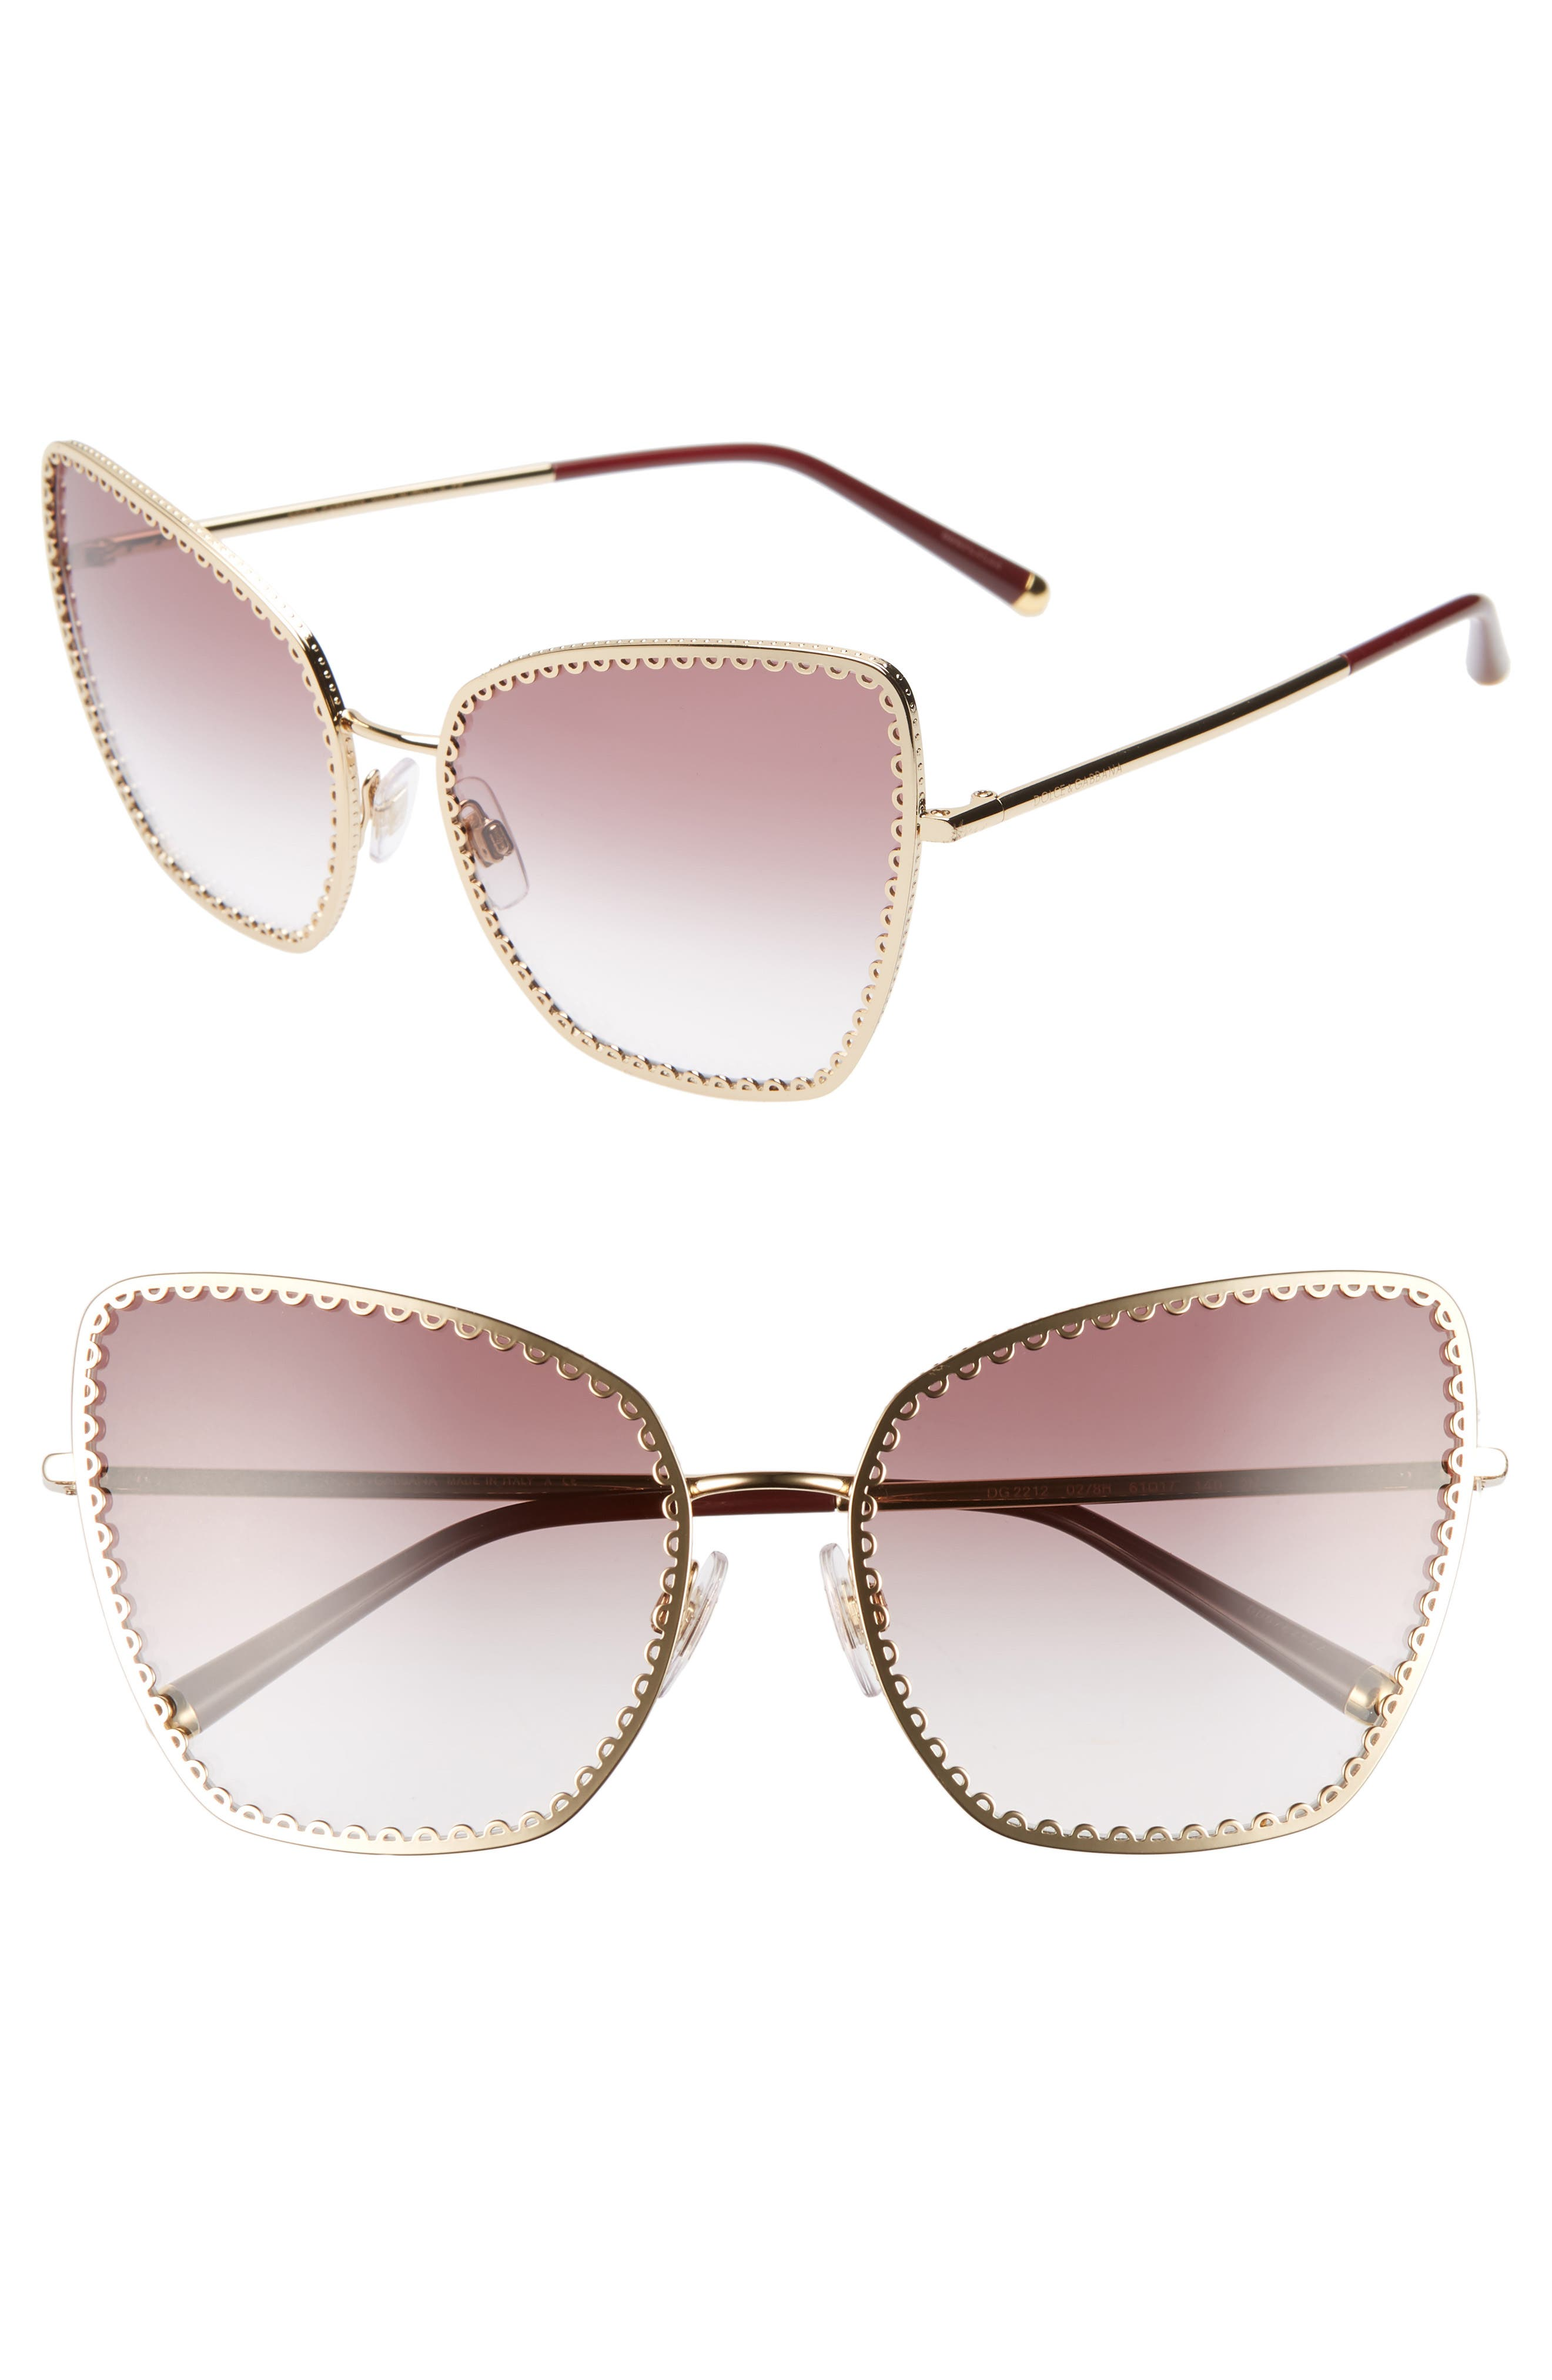 Dolce & gabbana Sacred Heart 61Mm Gradient Cat Eye Sunglasses - Gold Violet Gradient